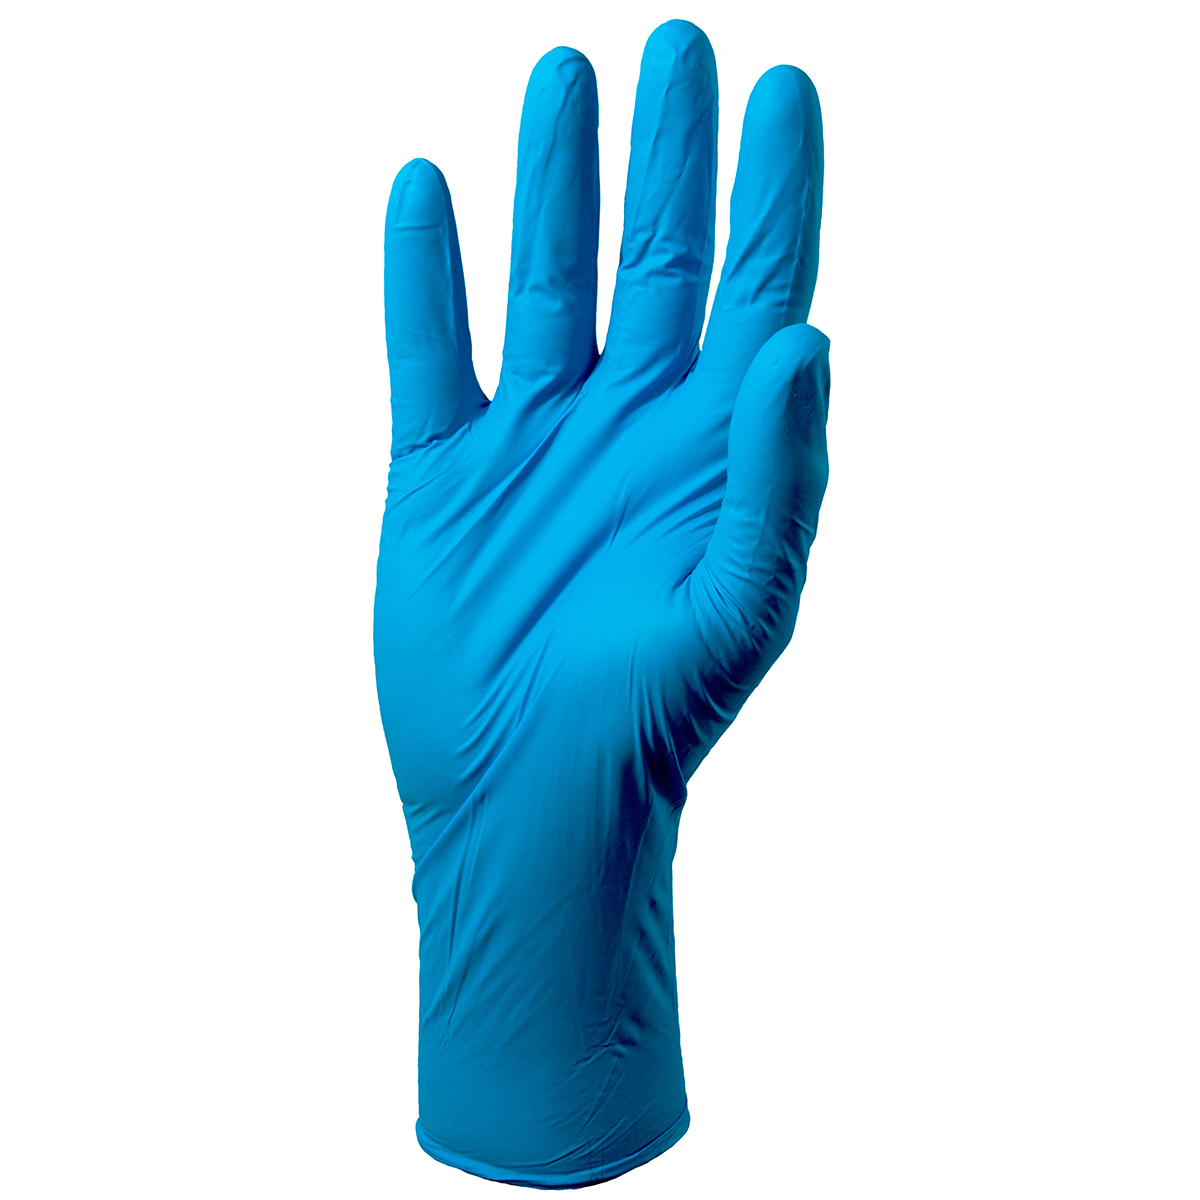 Pack of 100 Large Extra Long Cuff Nitrile Gloves